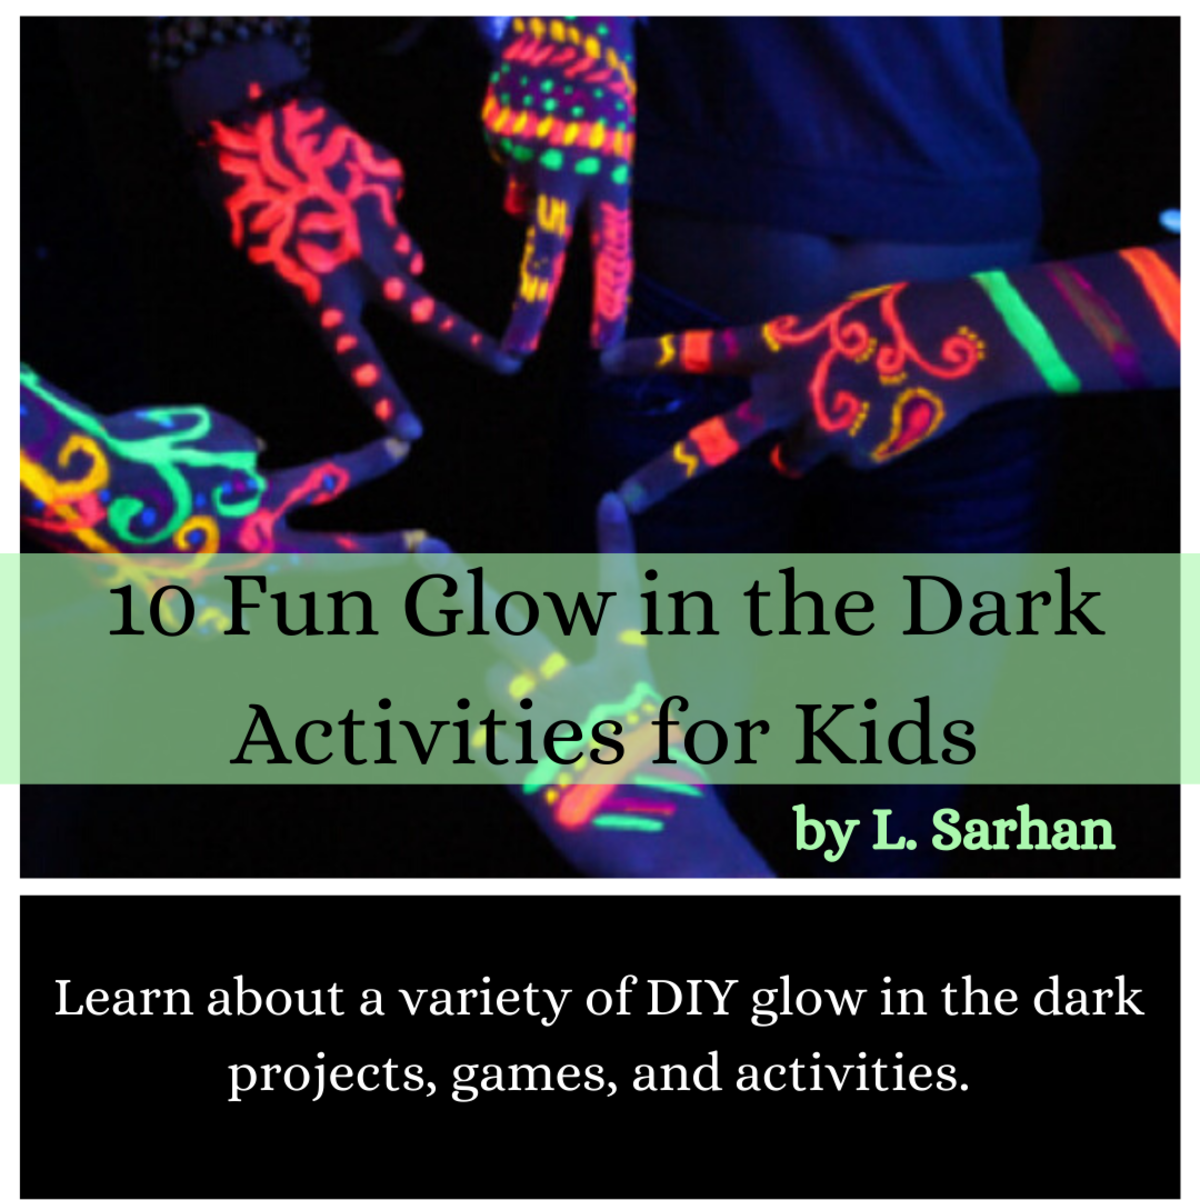 This article gives 10 examples of simple glow in the dark activities that provide hours of family-friendly fun.